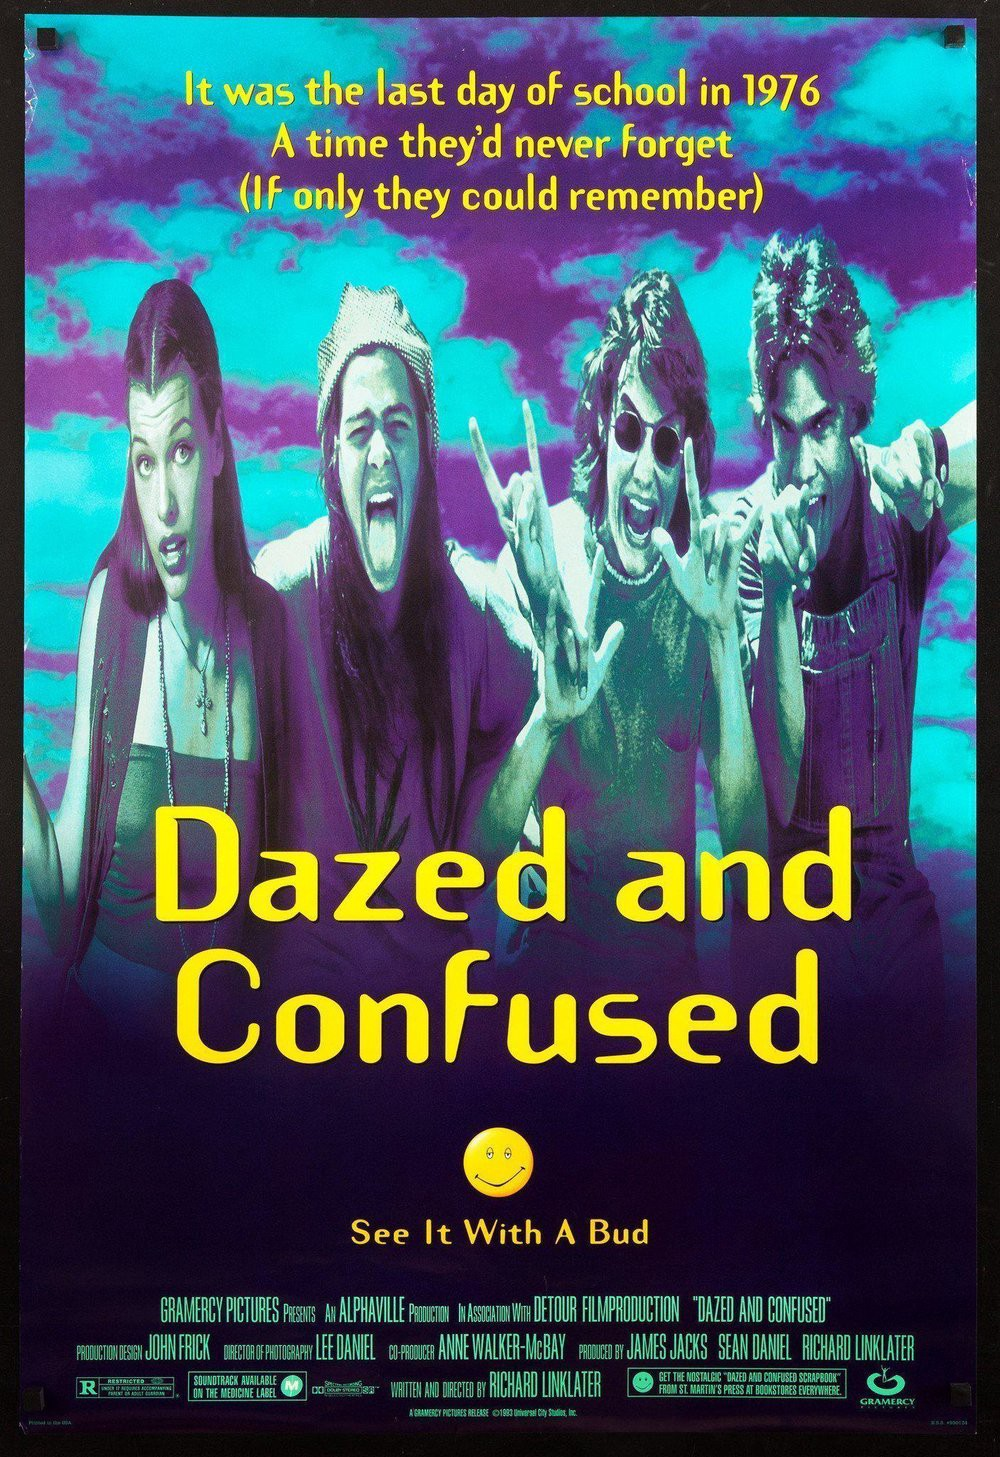 dazed and confused full movie free 123